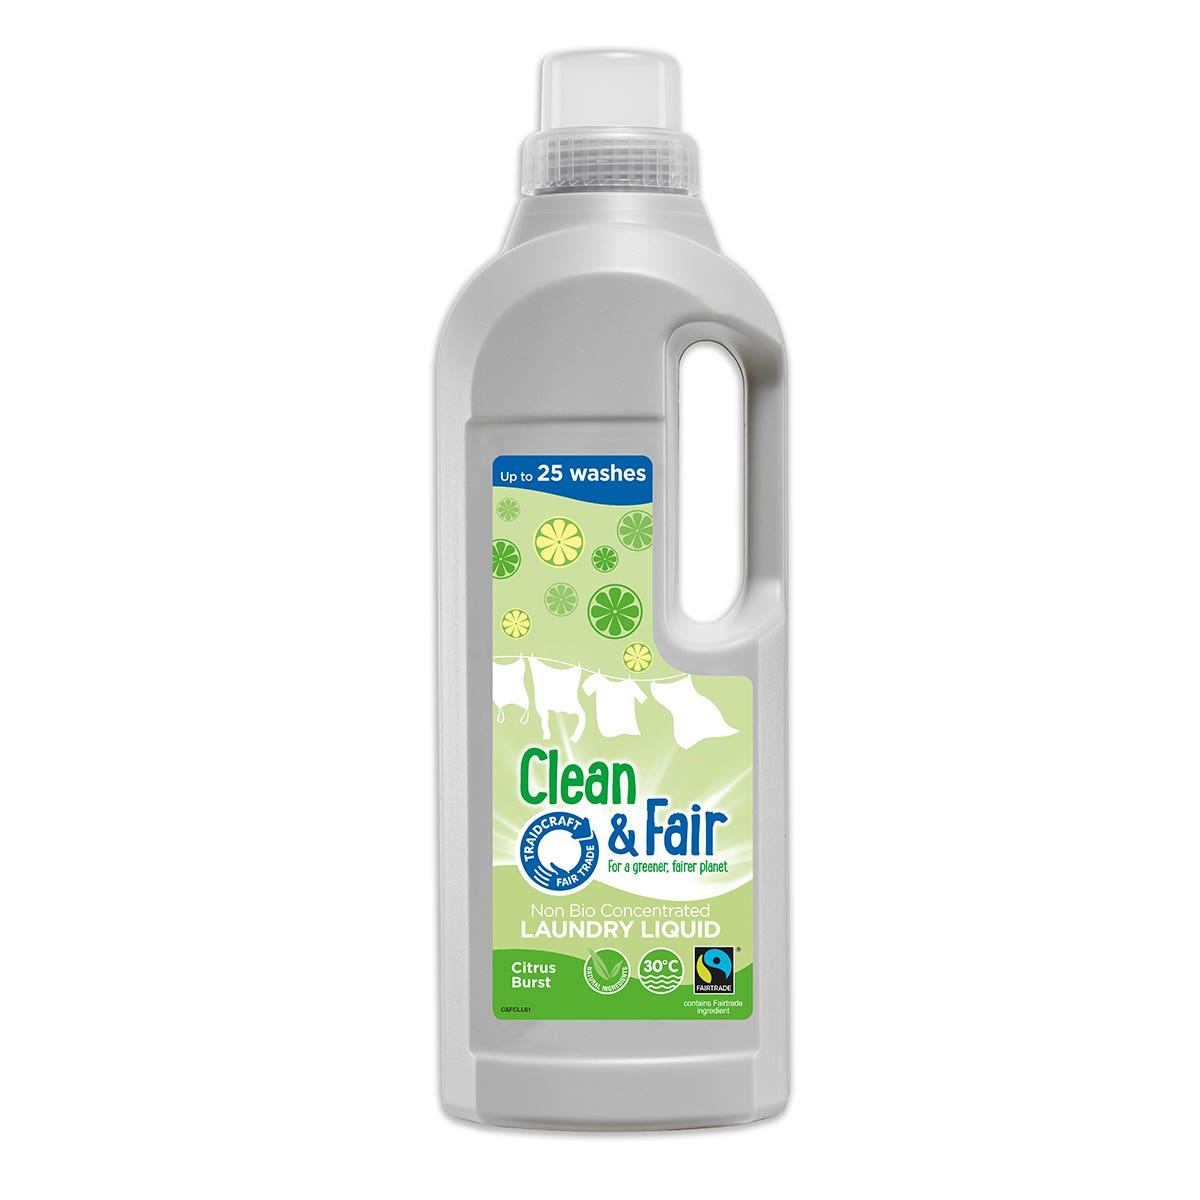 Clean & Fair Citrus Burst Laundry Liquid (6x1L)